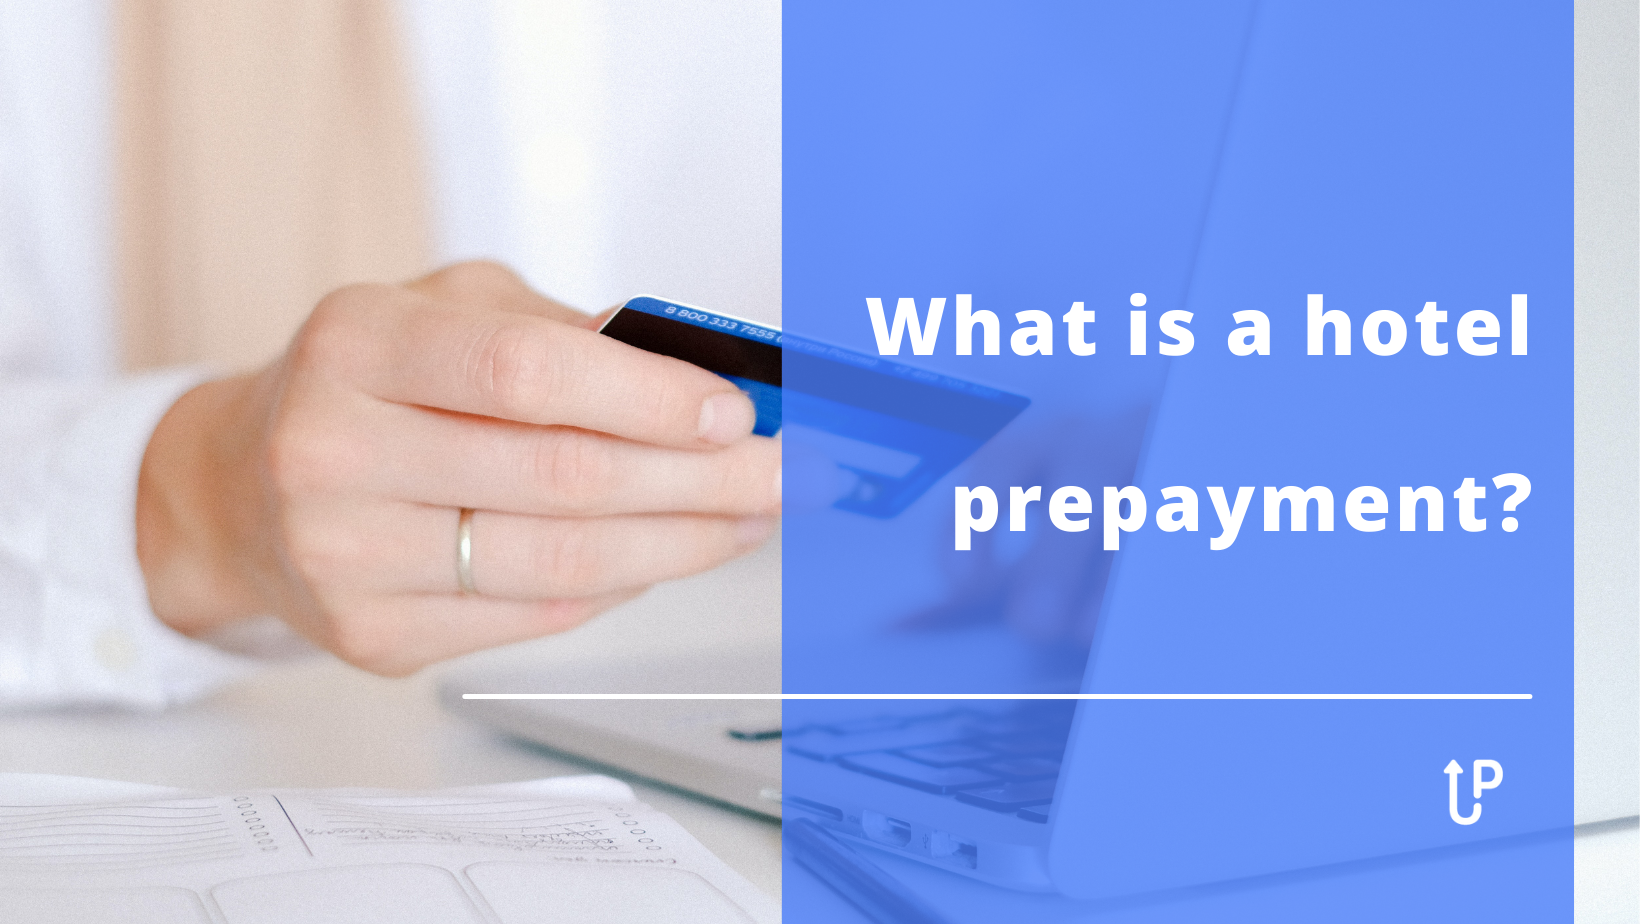 What is a hotel prepayment?